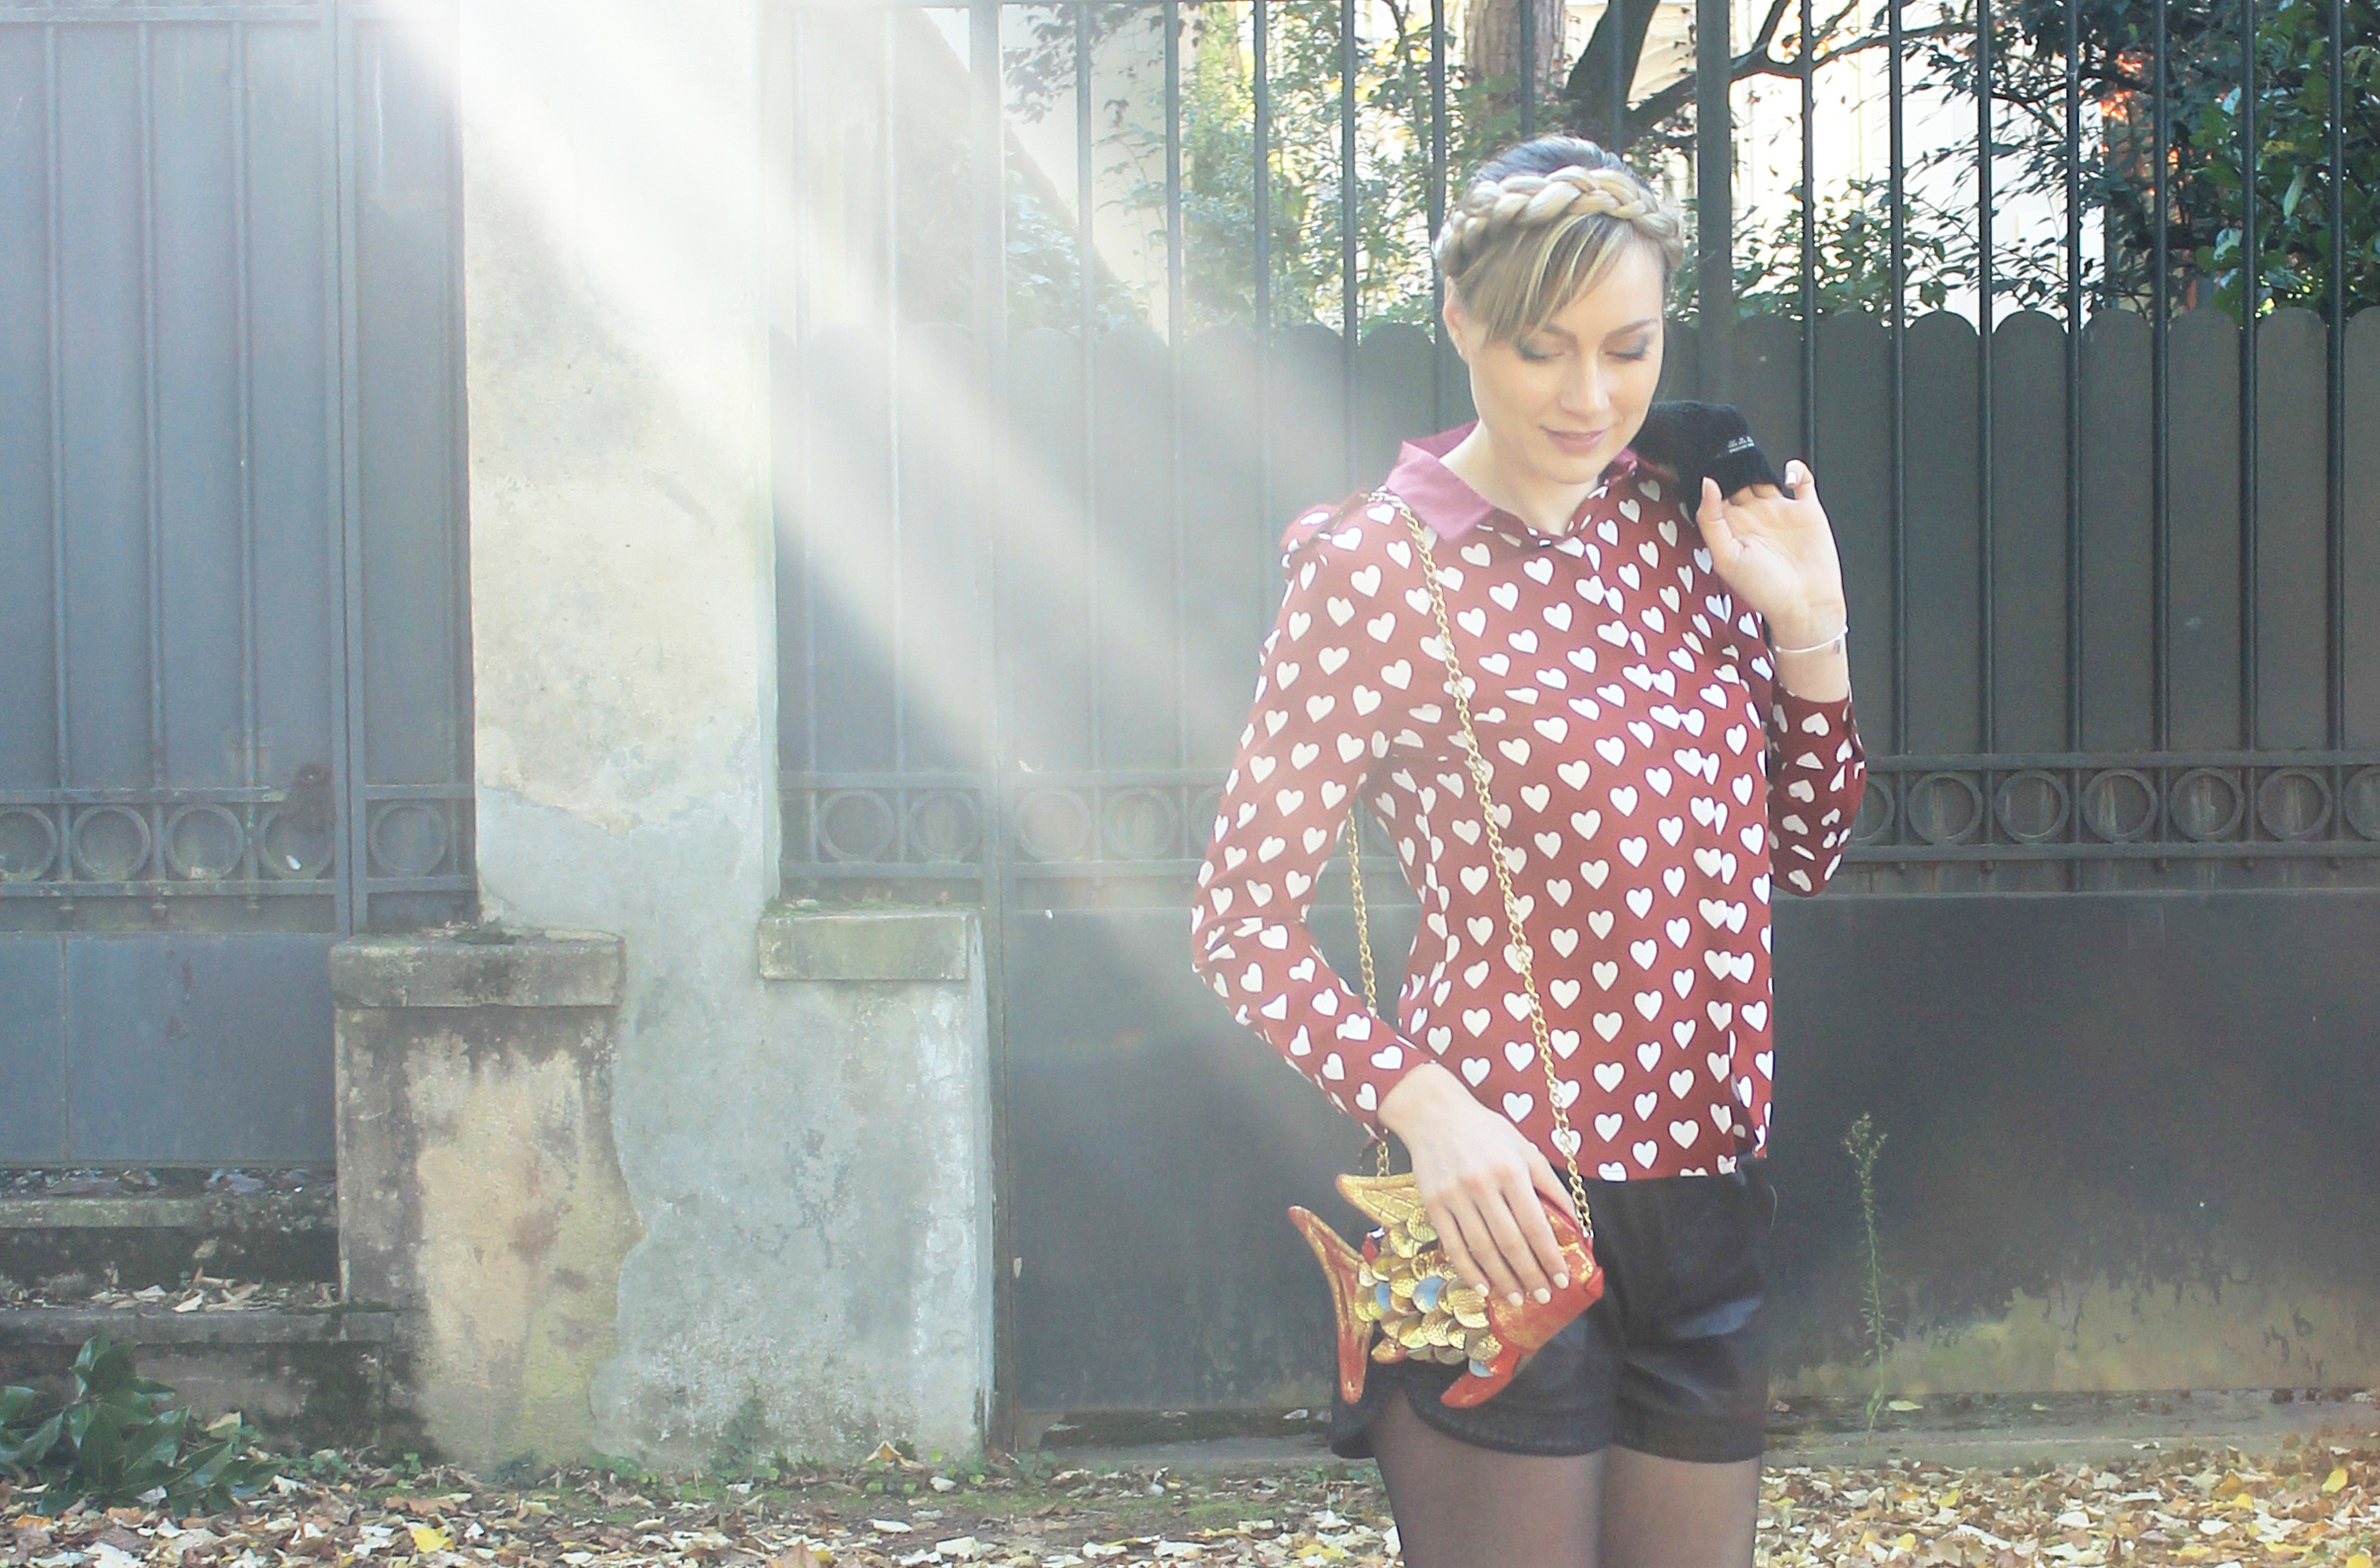 streetlook/fashionblogger/blog mode/Outfitoftheday